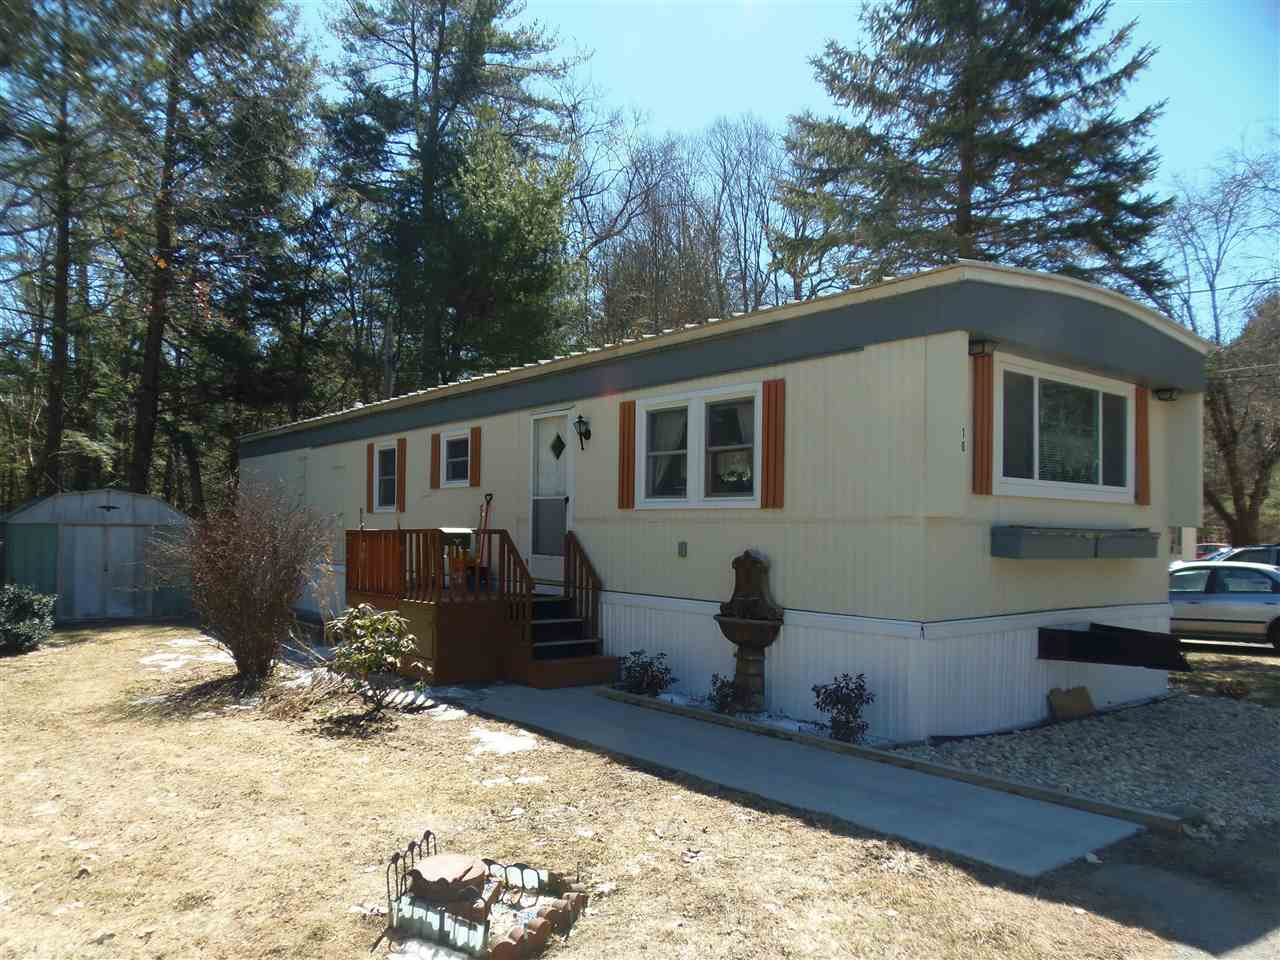 MLS 4773817: 10 Imperial Drive, Keene NH